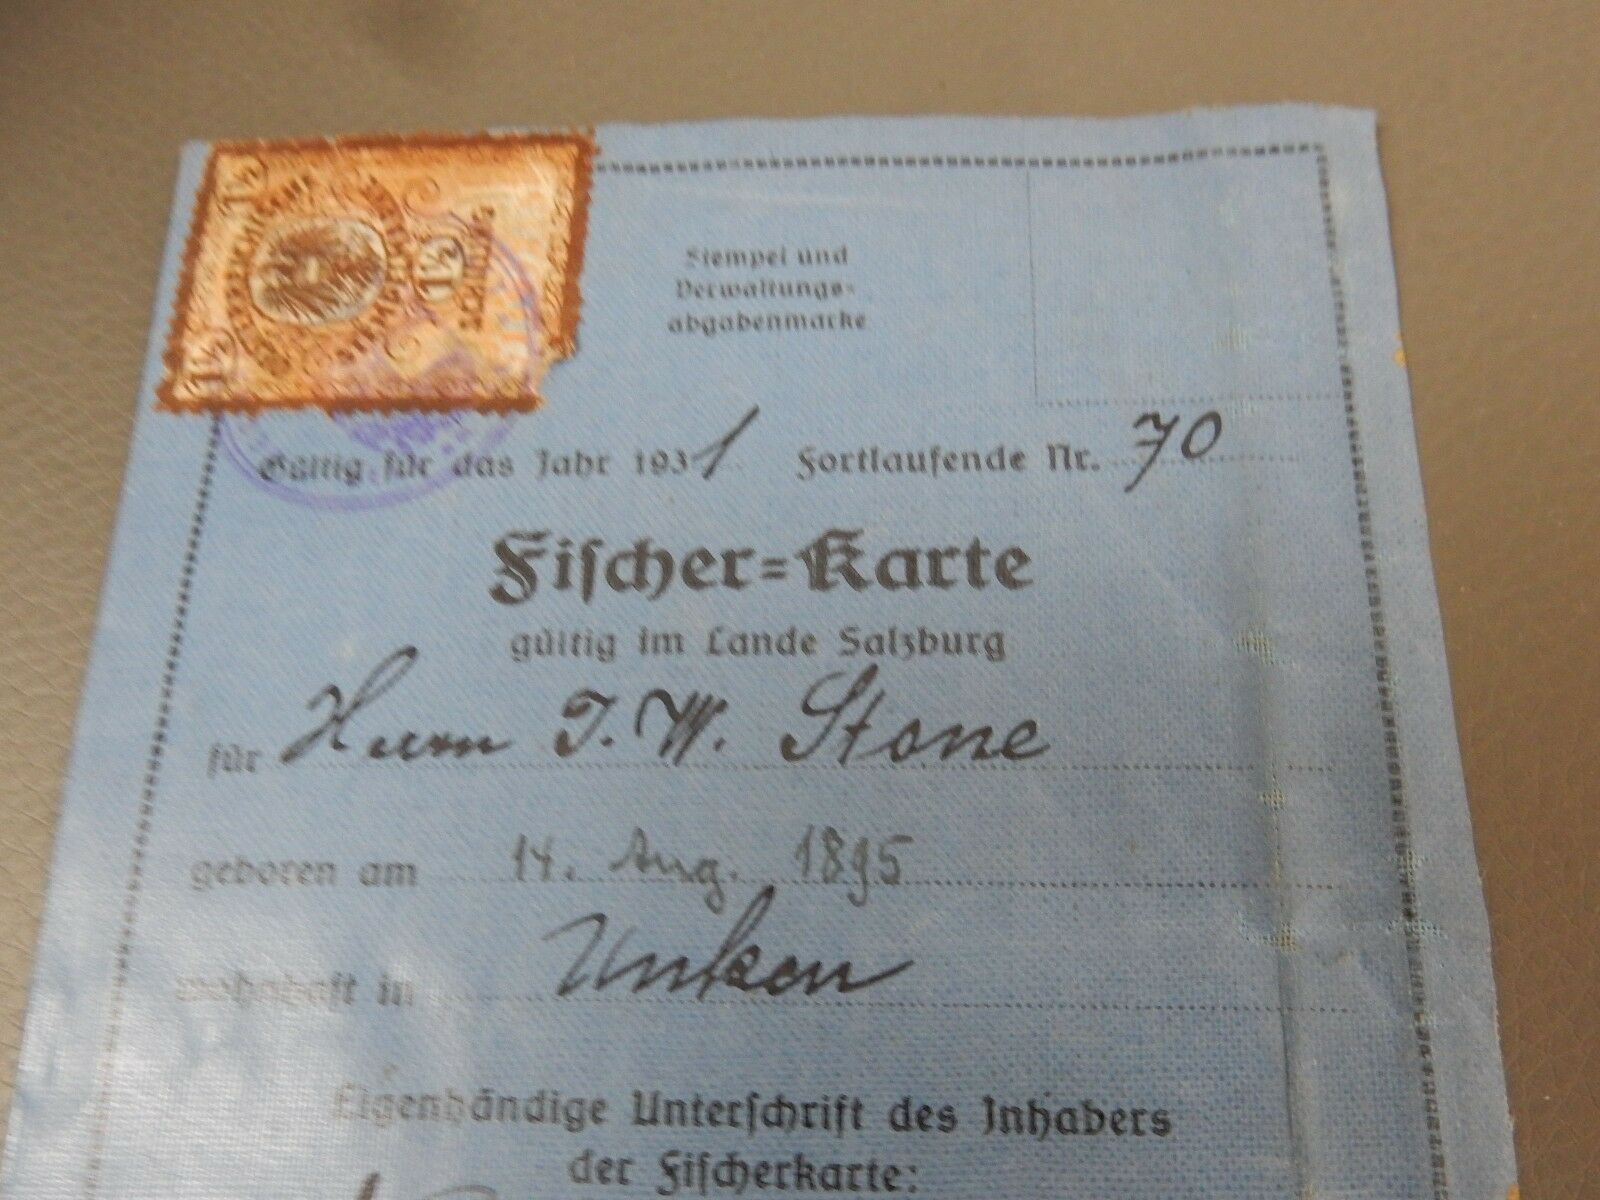 1931 UNKEN  FISHERMANS ANGLING PASSPORT ANGLER FISCHER SALZBURG ISSUED licence  after-sale protection